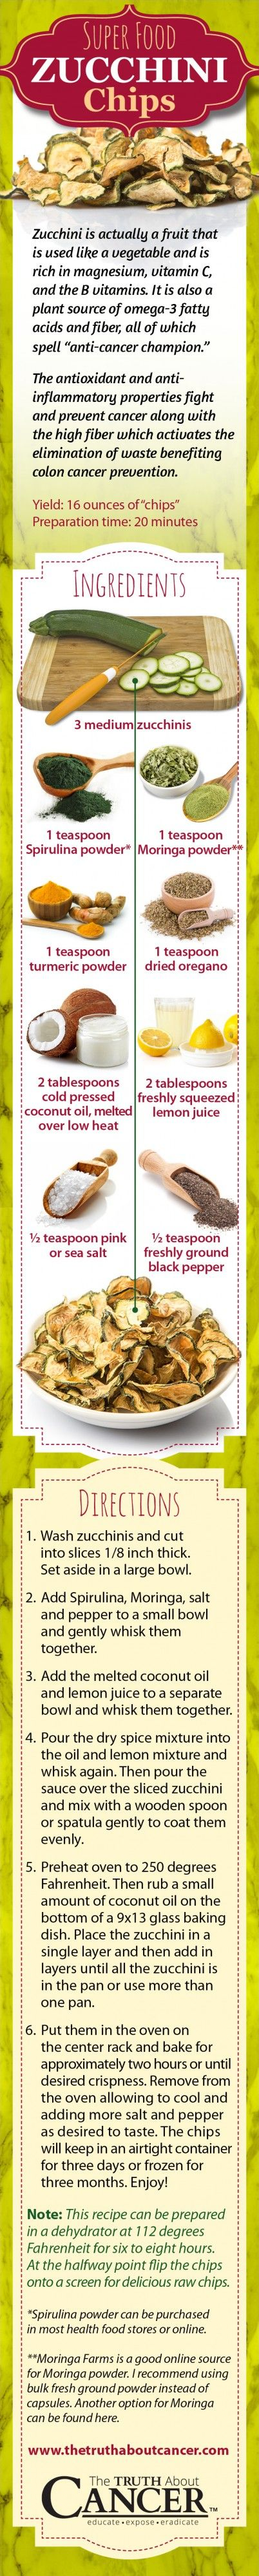 Here is a yummy chips alternative recipe you can try at home. This recipe is far healthier than normal potato chips, as zucchini is low in carbohydrates, plus you are baking them with coconut oil instead of sunflower oil. You can also prepare these zucchini chips in a dehydrator and avoid baking completely. Click on the recipe to get the scoop on why even kettle potato chips are bad for you...